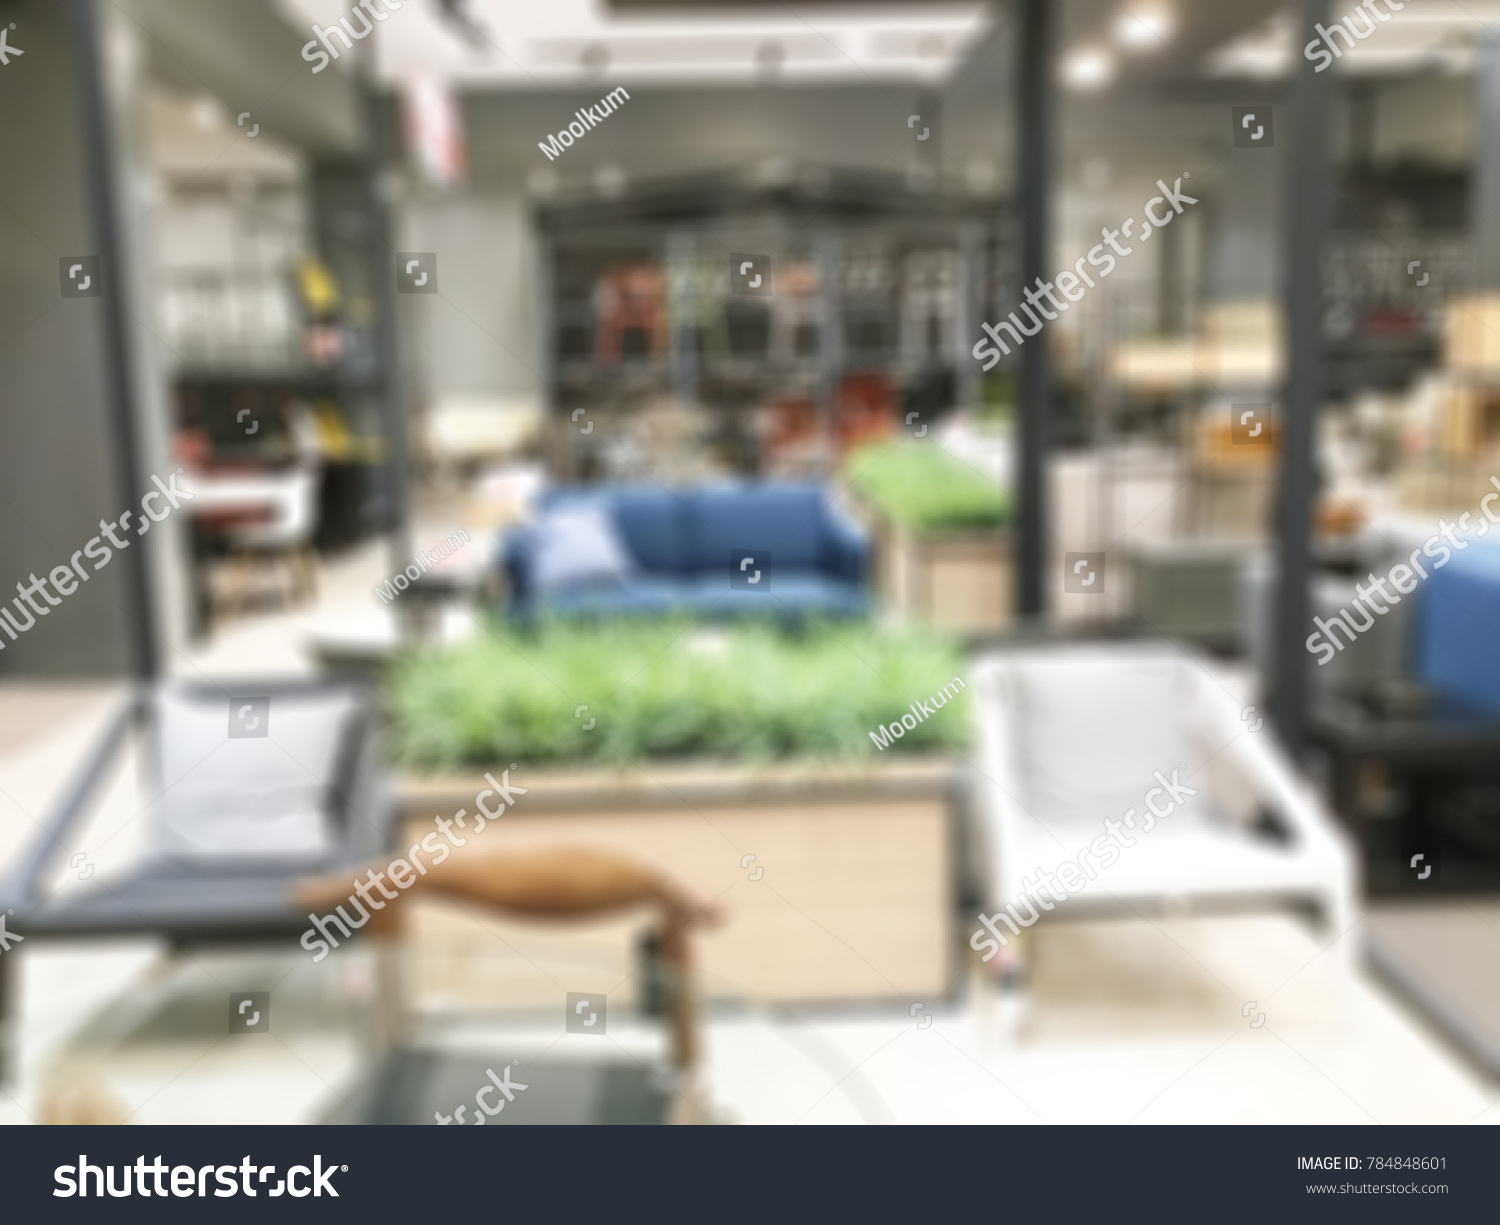 Abstract Blurred Photo Material Store Shopping Stock Photo (Royalty ...